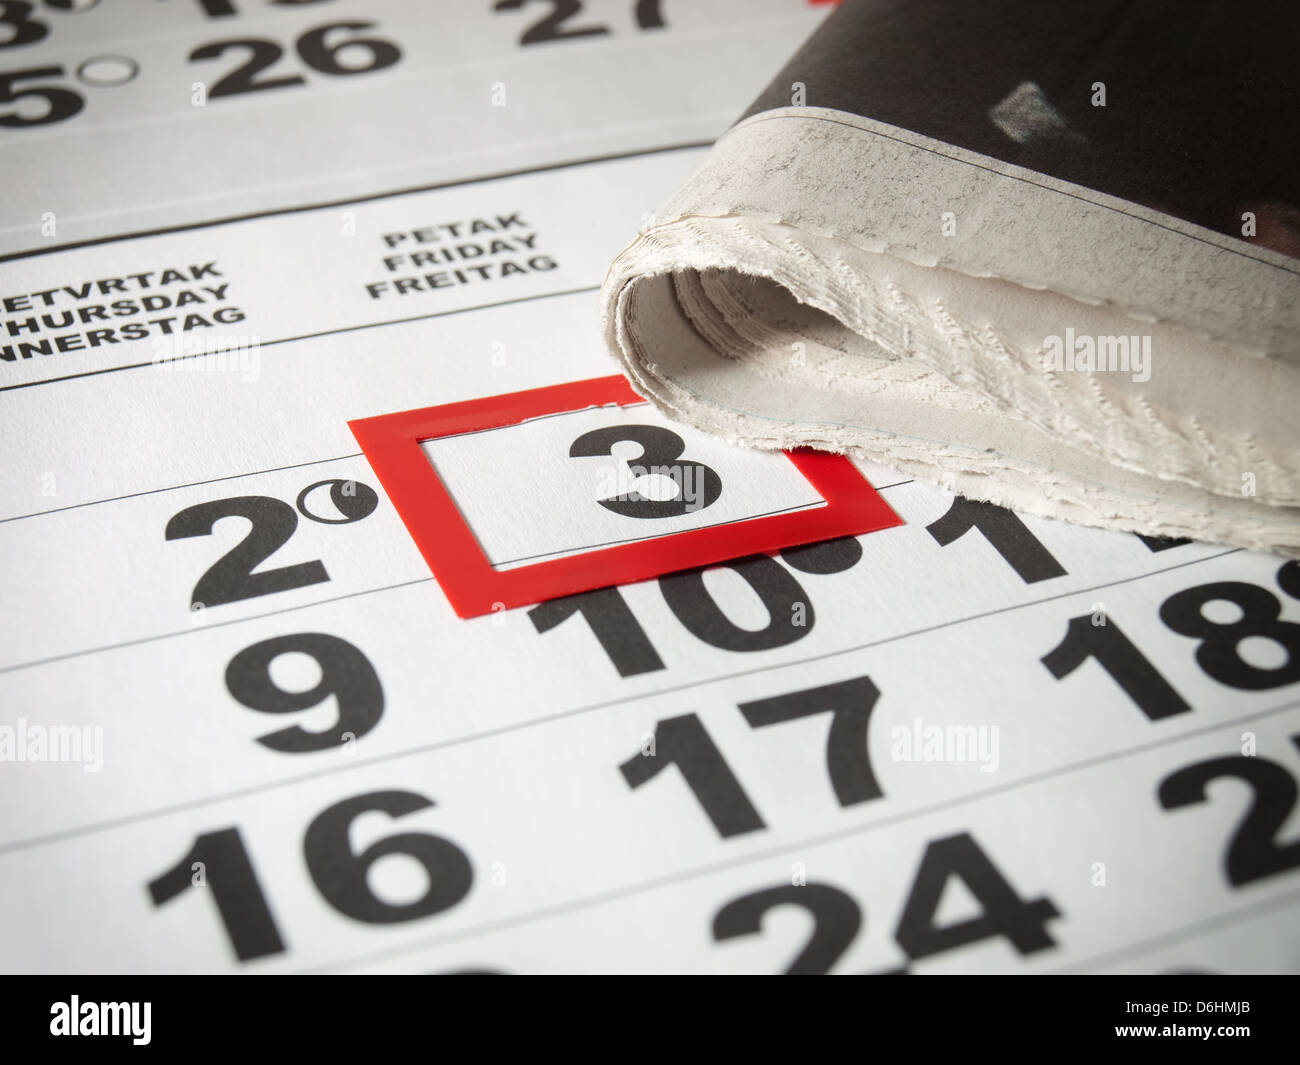 Conceptual image about an international holiday known as World press Day. - Stock Image